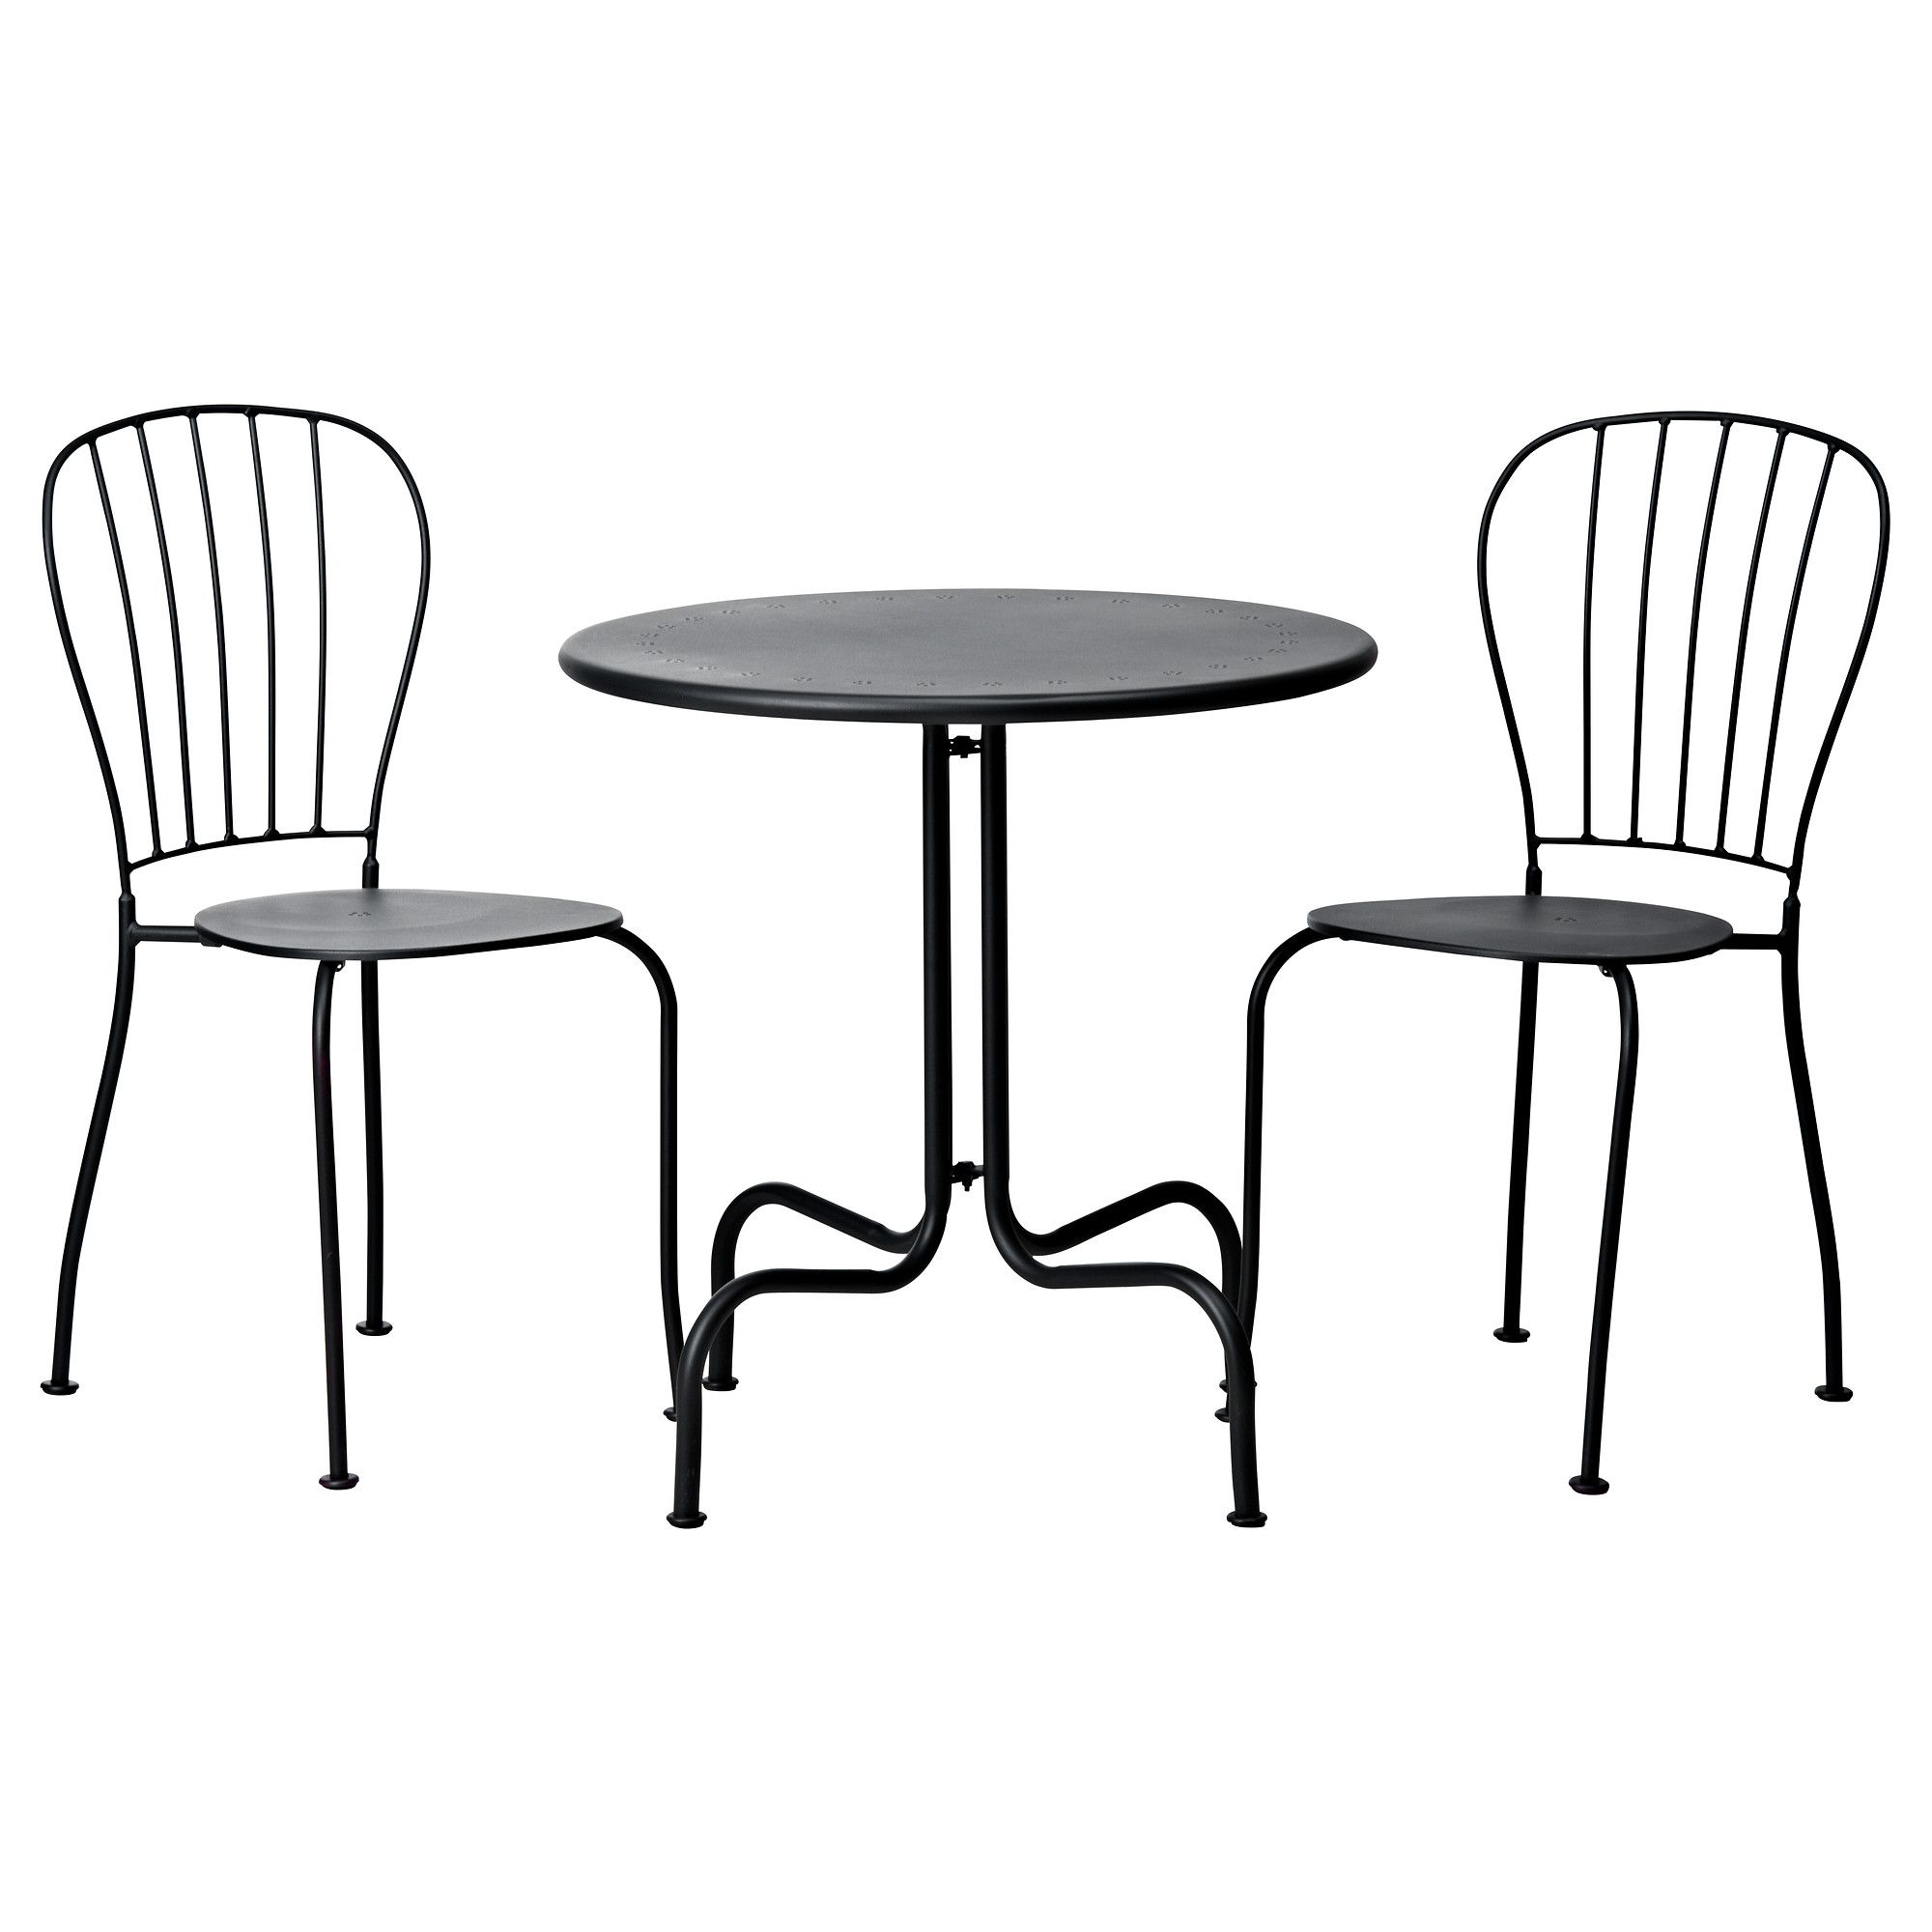 L ck table and chairs sprays and ikea chair for Deck table and chair sets